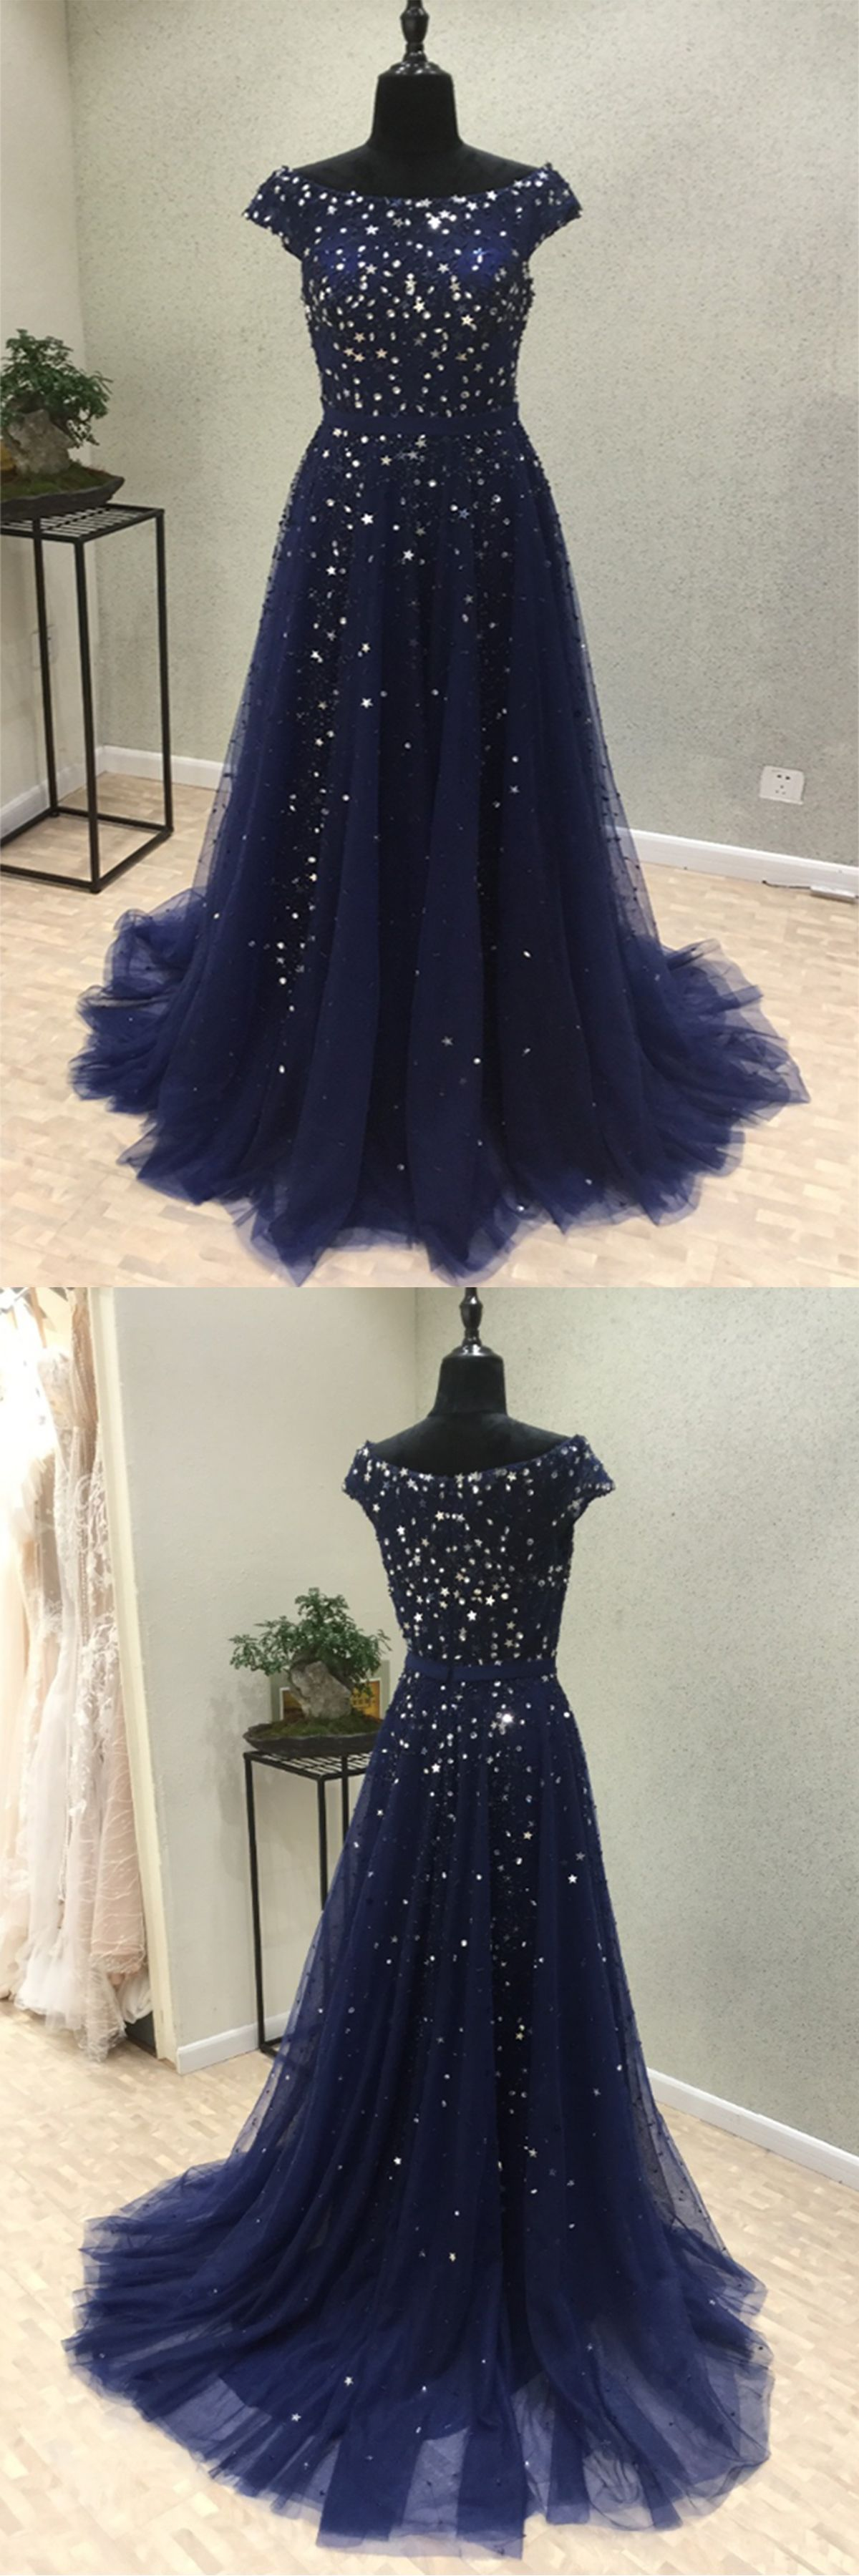 Sparkly prom dress blue tulle long evening gown for prom